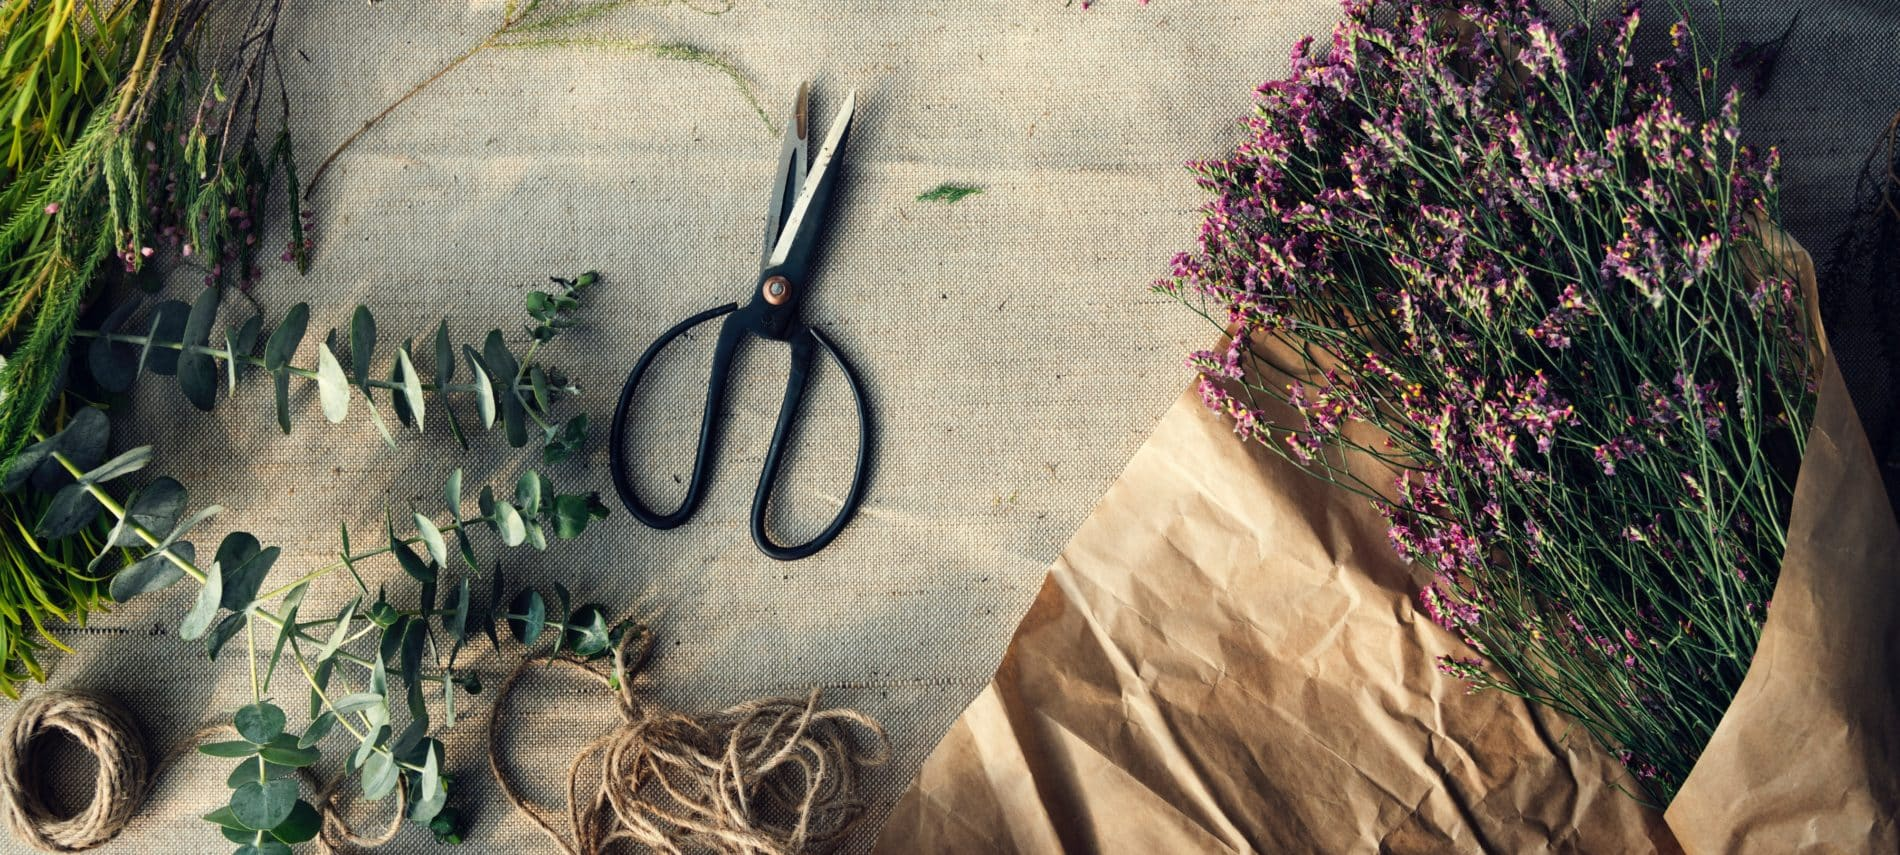 Flower shears lying on burlap covered table along side of eucalyptus and lavender with brown string and brown paper